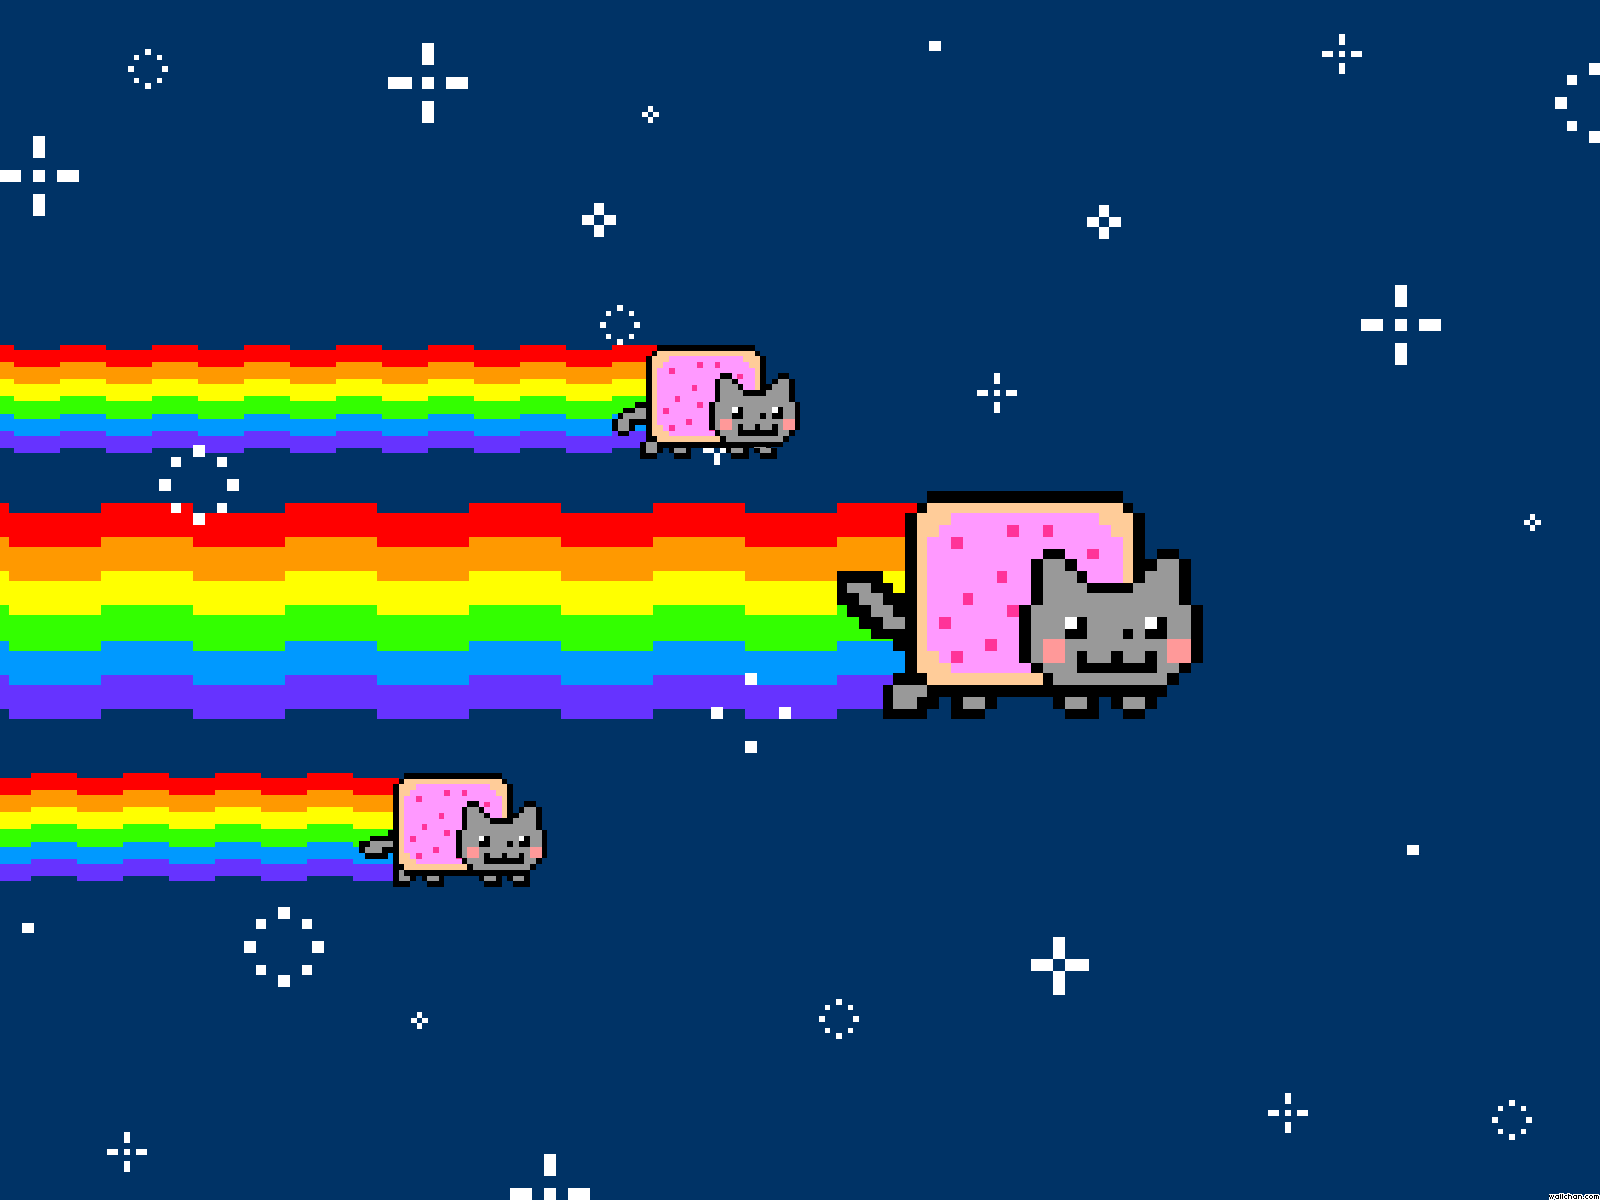 Coolest Nyan Cat Picture Ever